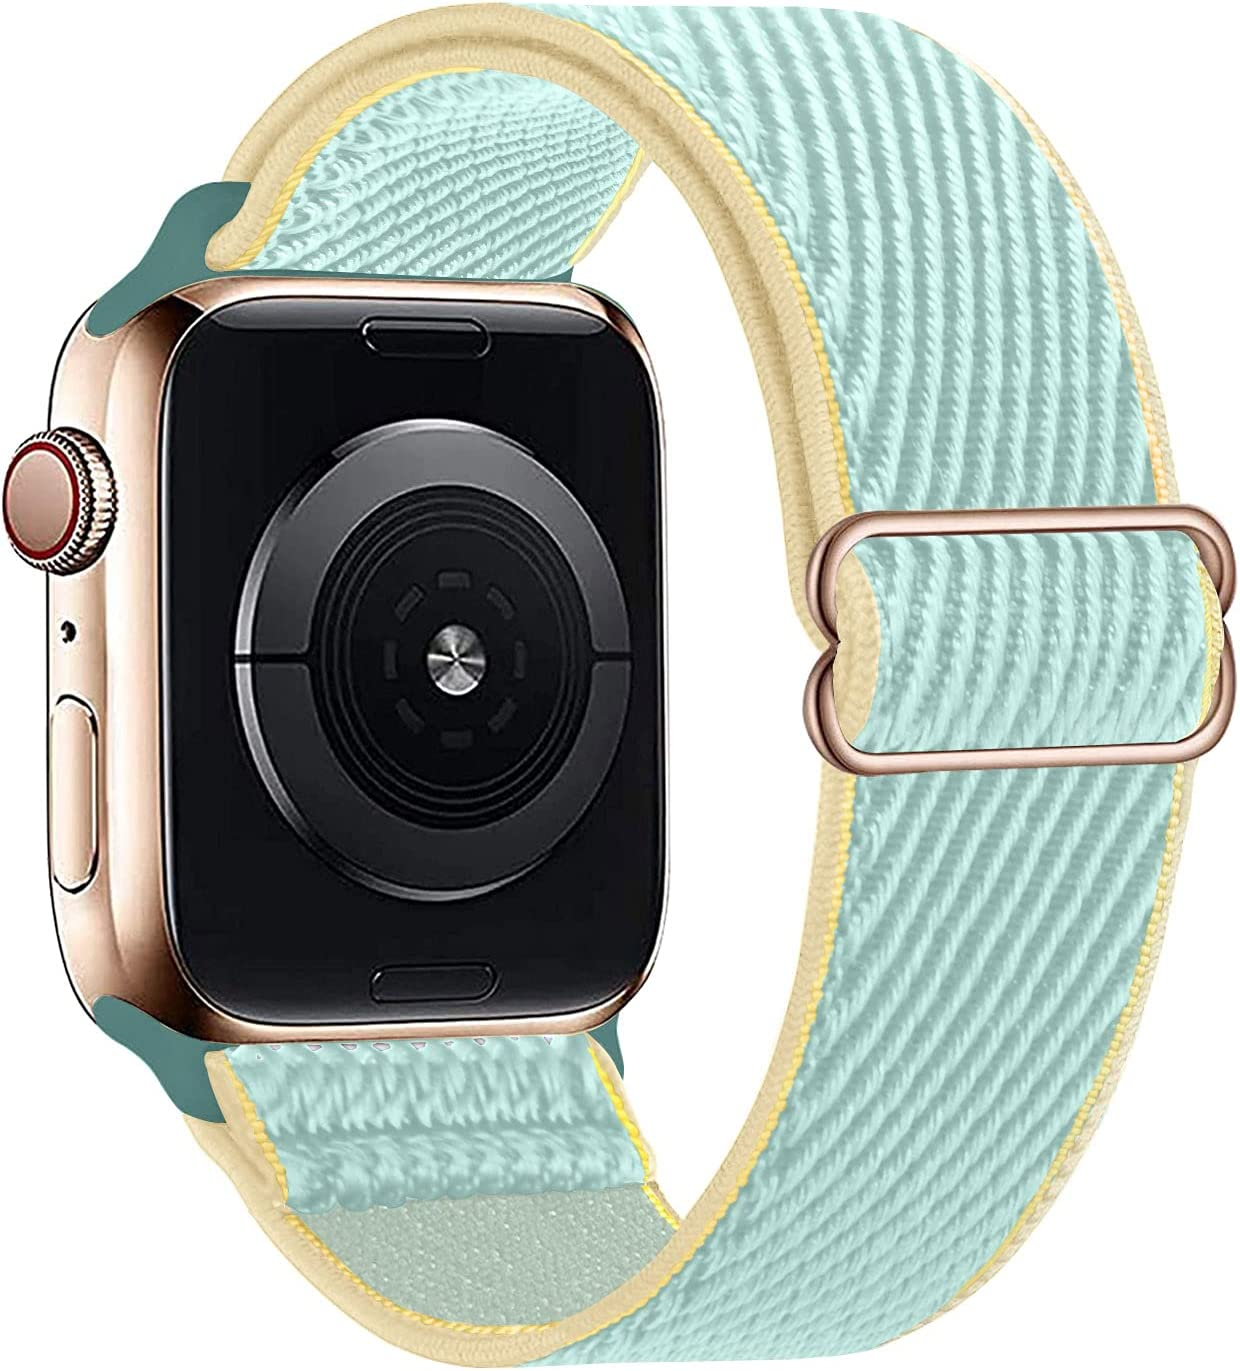 HdanMole Compatible with Apple Watch Bands 38MM 40MM 42MM 44MM Stretchy Solo Loop Strap,Adjustable Stretch Braided Elastics Nylon Wristband Compatible for iWatch Series 6/5/4/3/2/1/SE